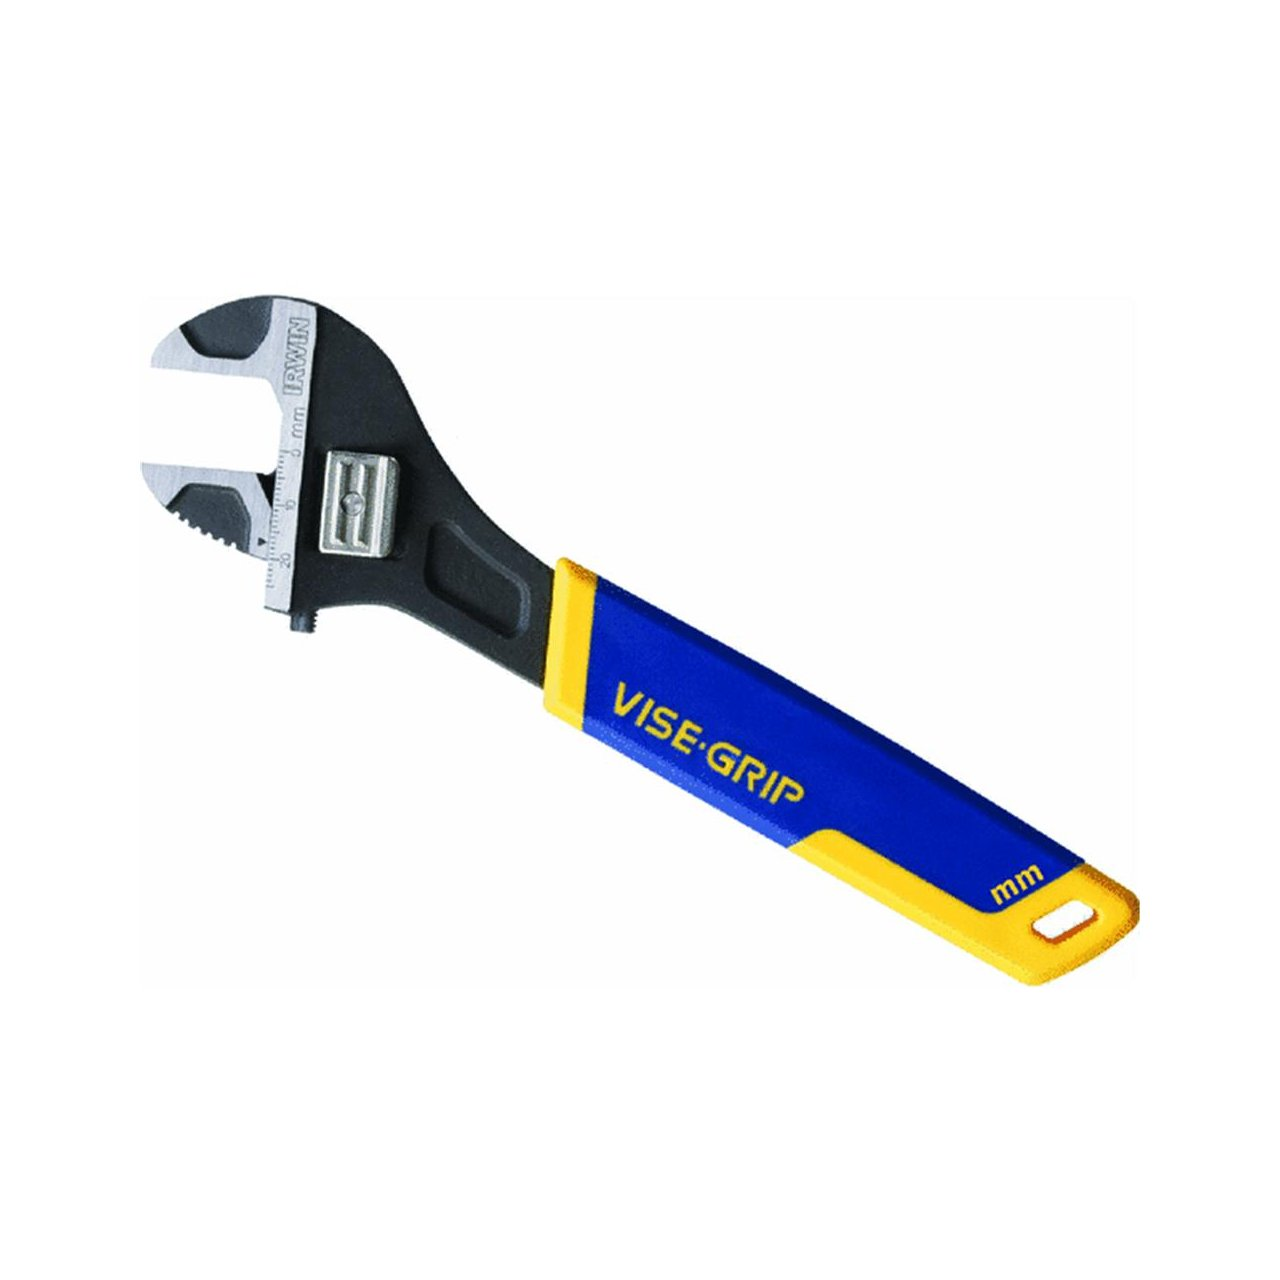 Irwin / Hanson / Vise Grip (VGP2078602) 8 Metric Quick Adjusting Wrench quercetti пиксельная мини попугай 1200 деталей